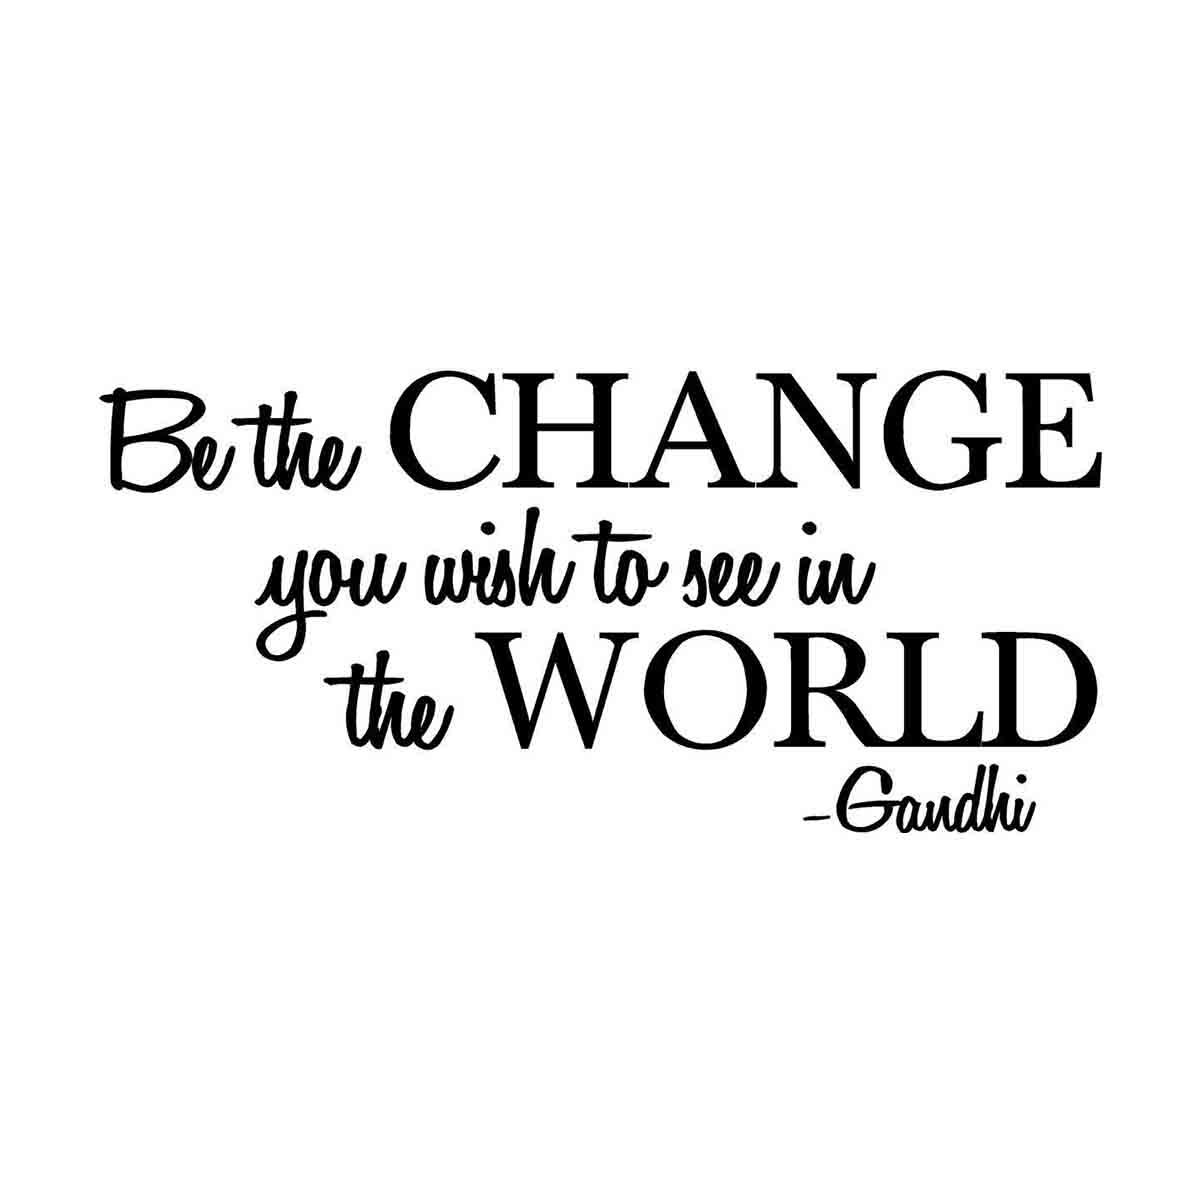 Empresal Be The Change You Wish to See in The World - Gandhi Wall Quote Sayings Letters Decals Lettering Vinyl Sticker Sign by Empresal